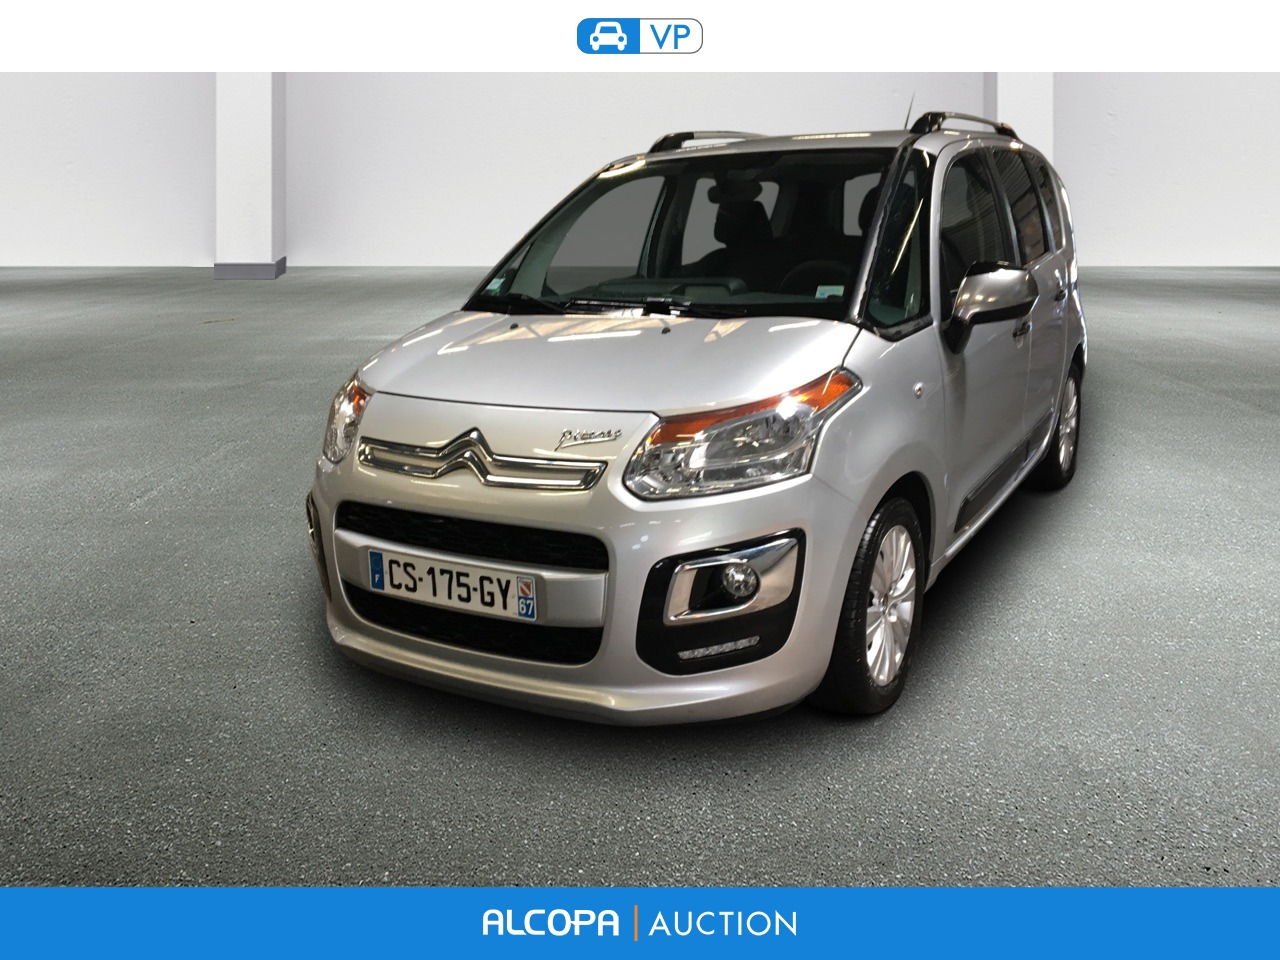 citroen c3 picasso c3 picasso hdi 90 collection alcopa auction. Black Bedroom Furniture Sets. Home Design Ideas